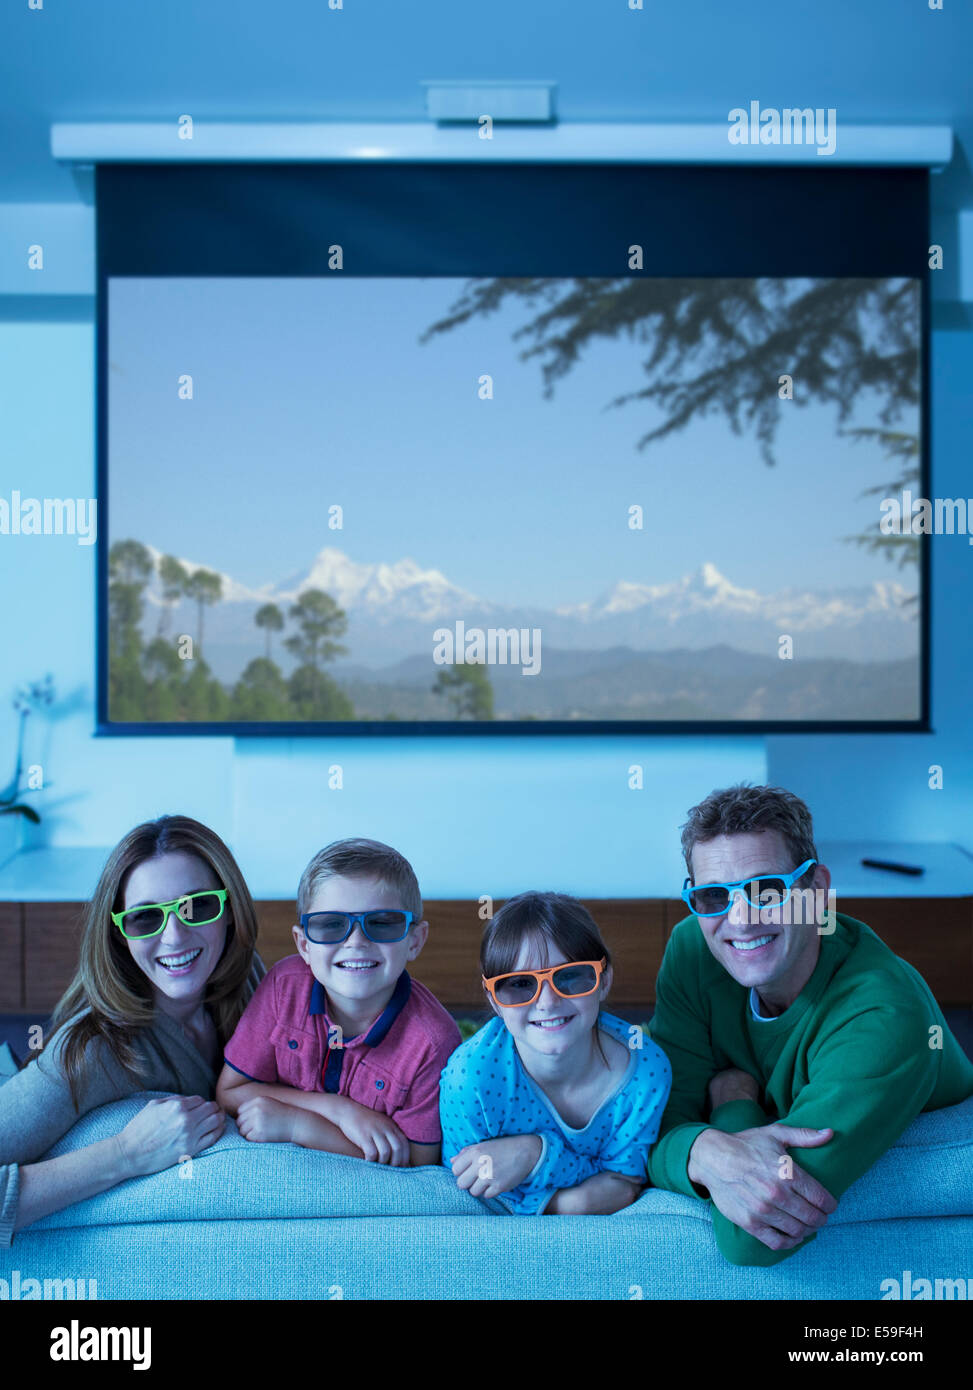 Family watching 3D television in living room - Stock Image